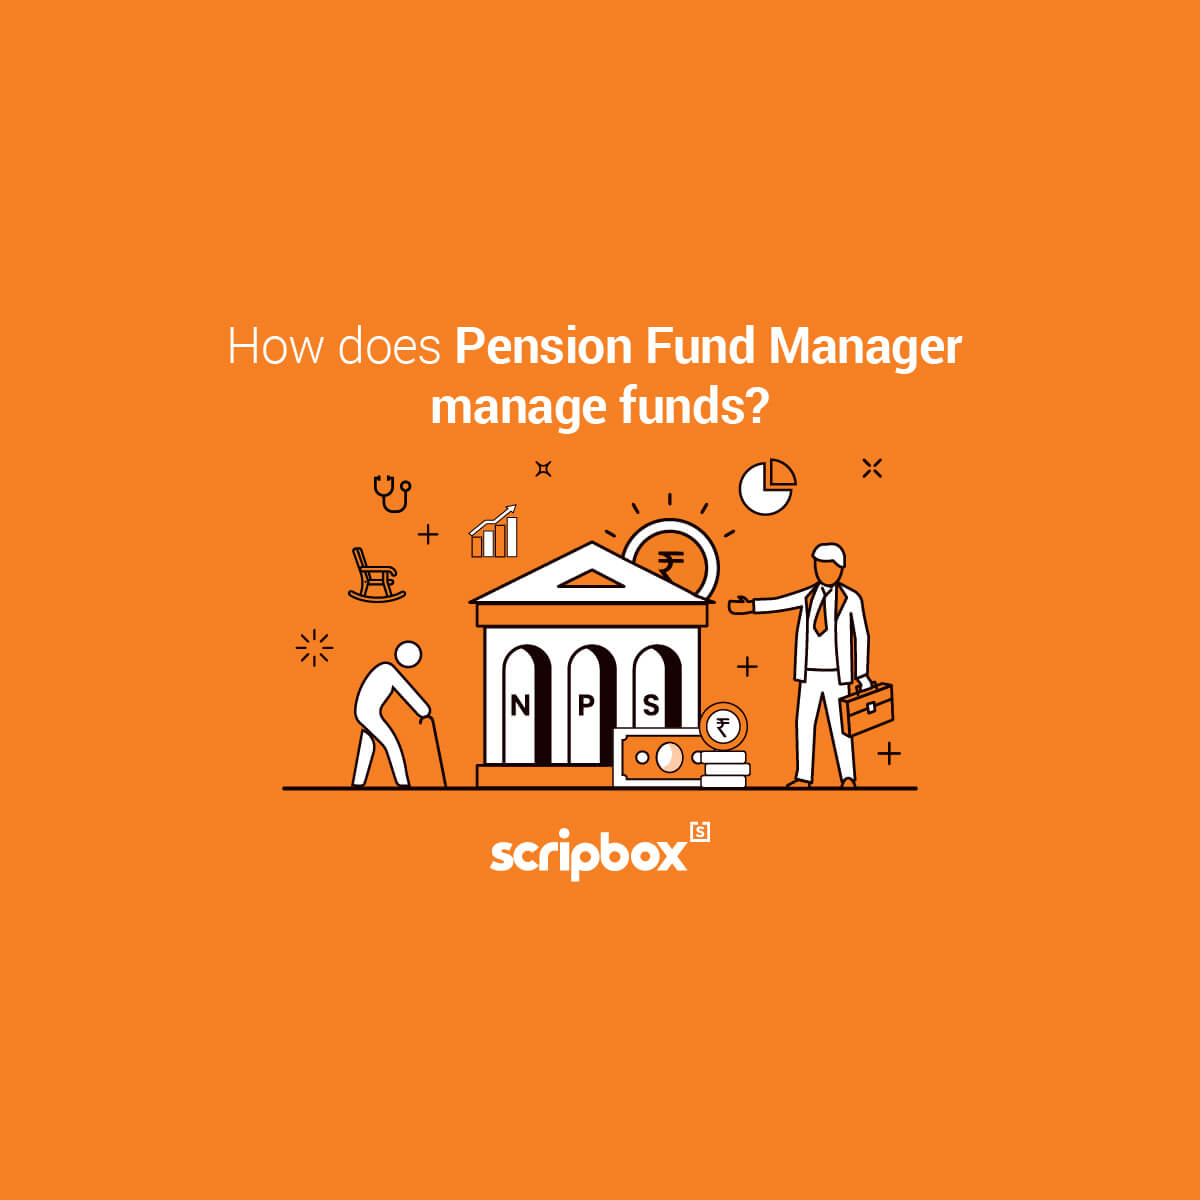 pension fund manager